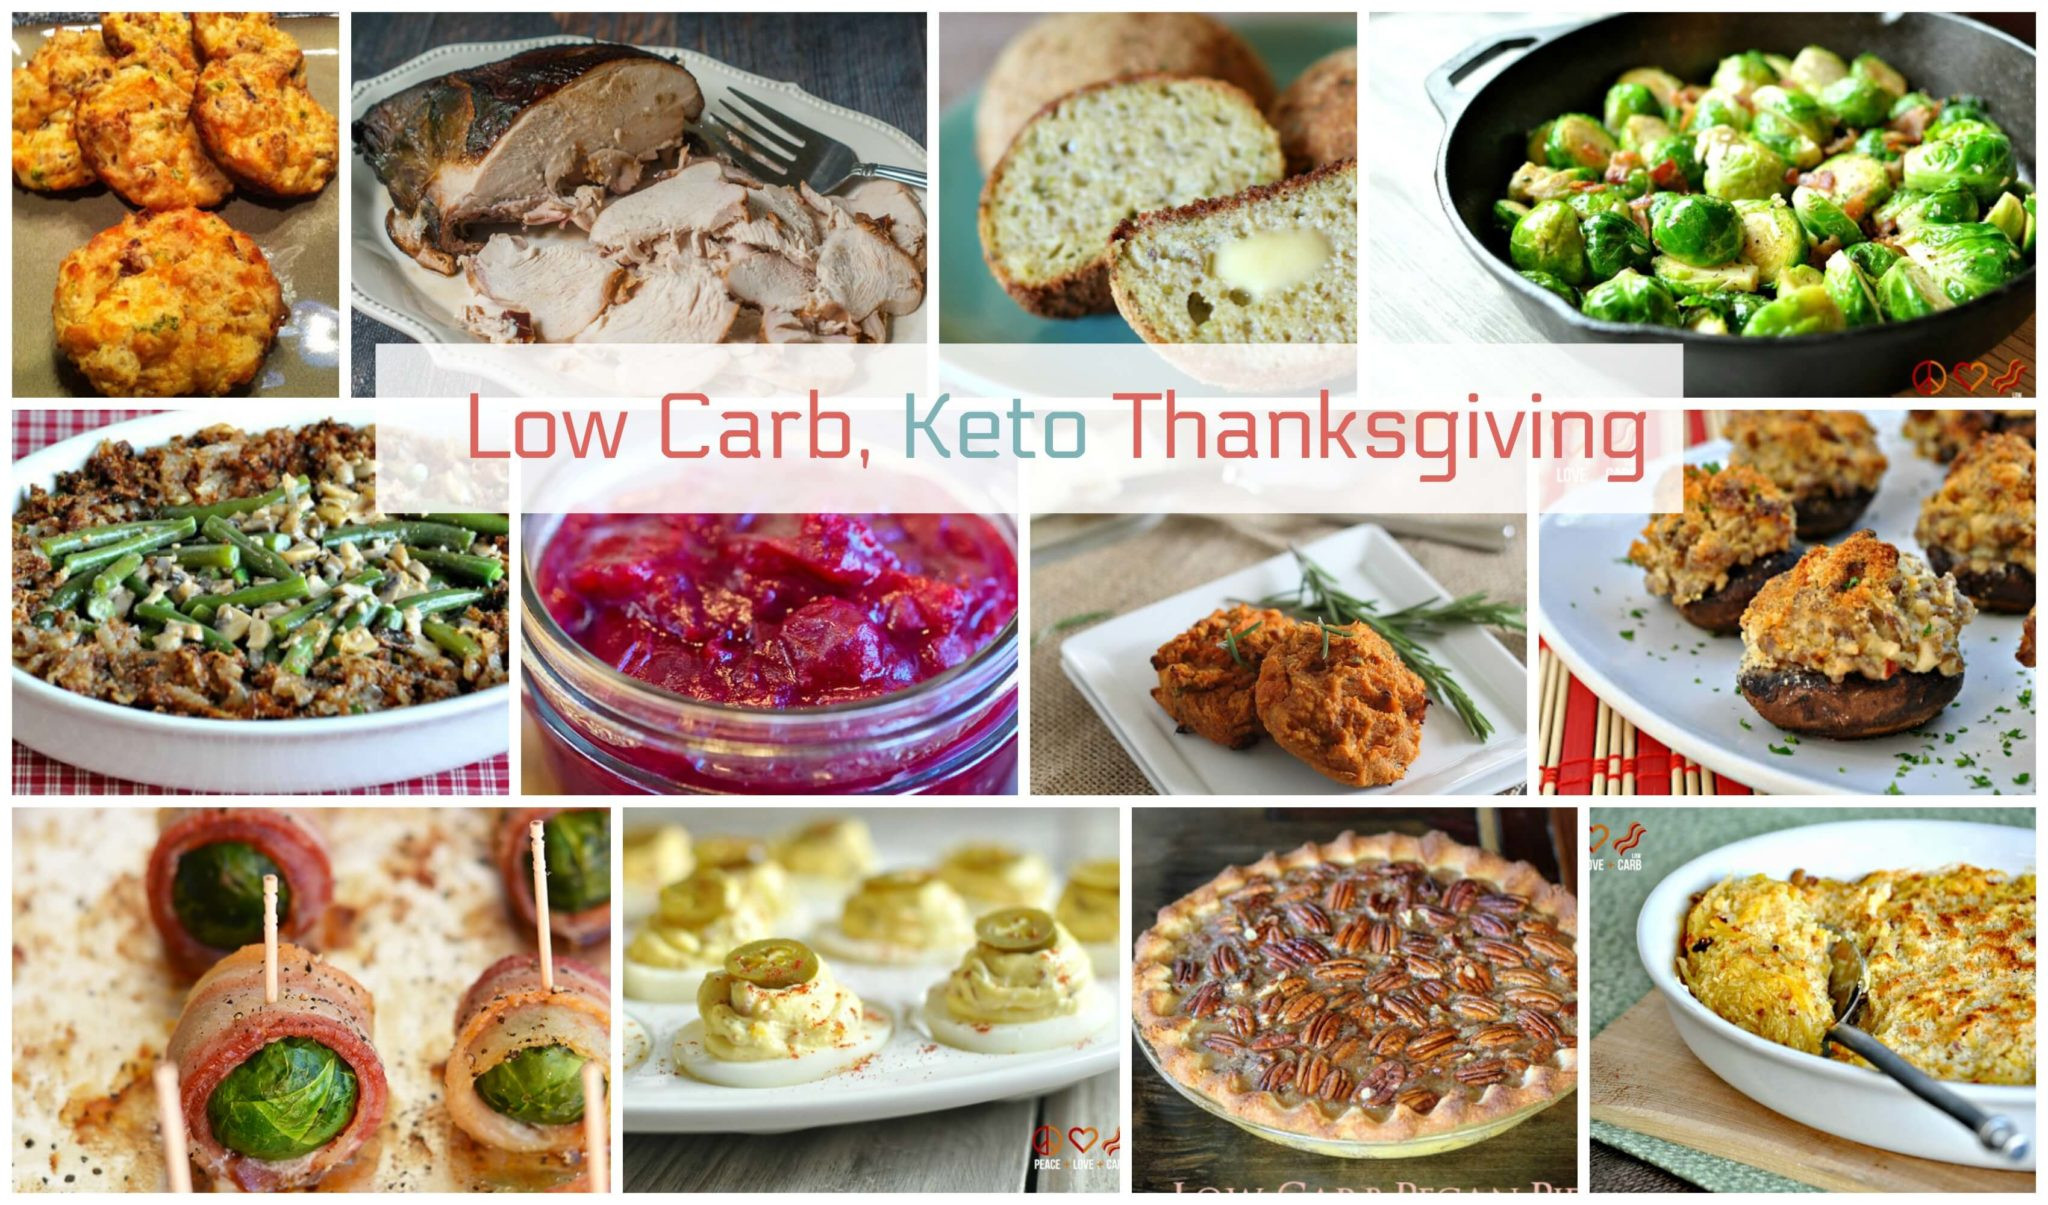 Low Carb Thanksgiving Recipes  Keto Thanksgiving Recipes